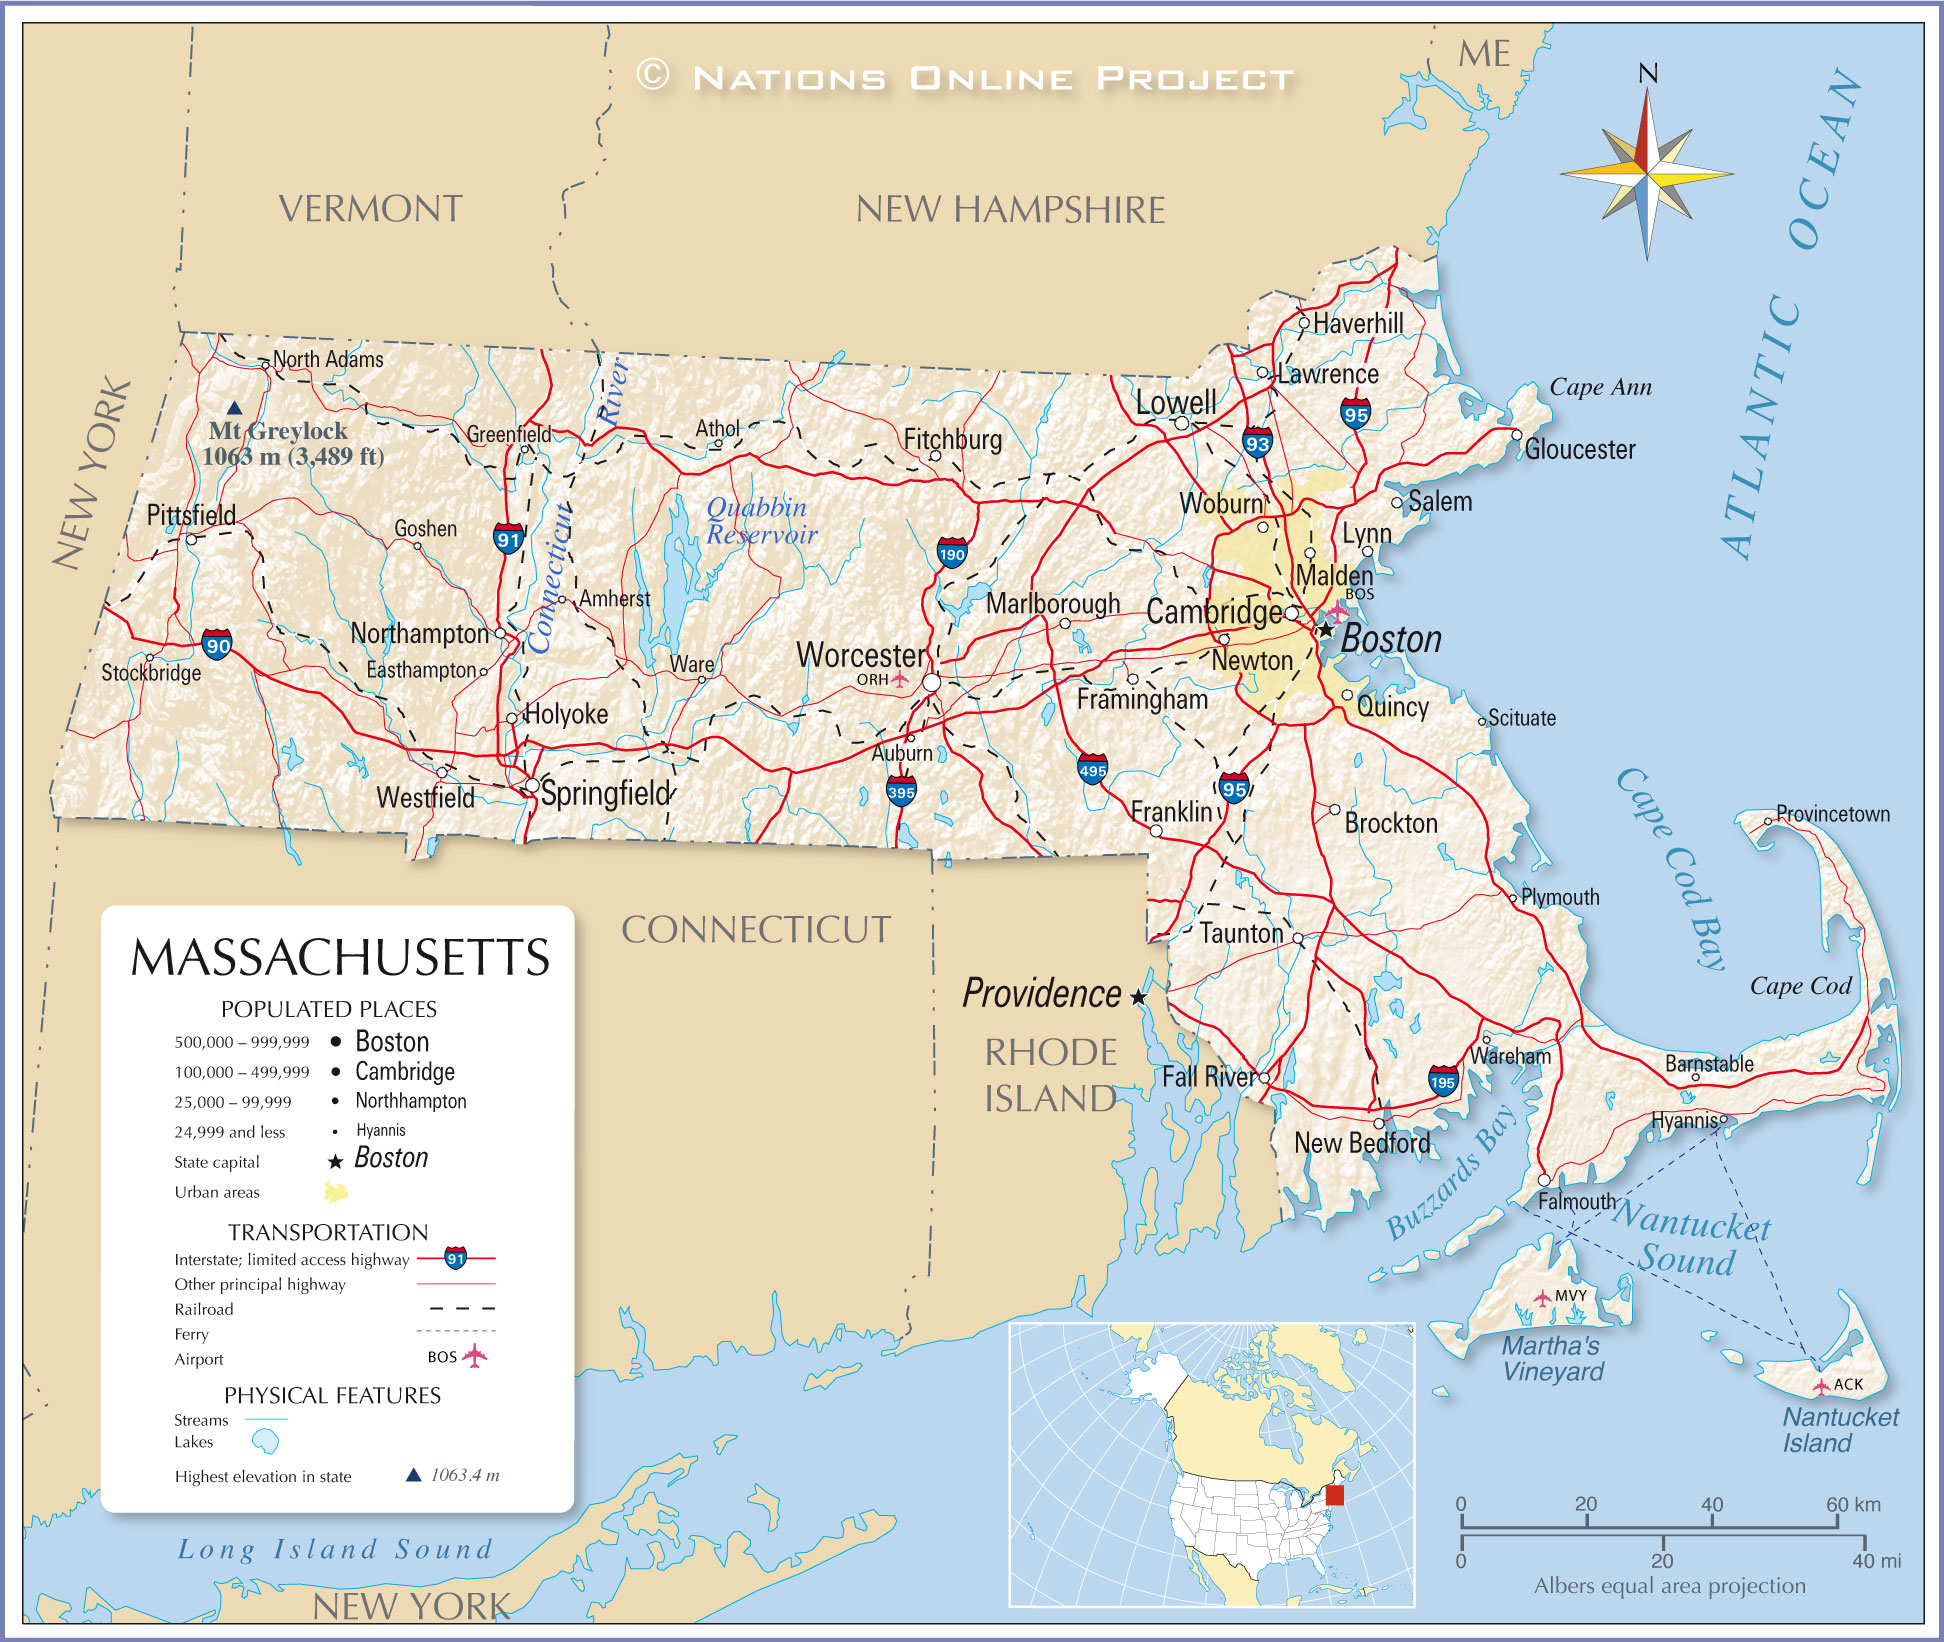 Reference Map Of Massachusetts USA Nations Online Project - Maps massachusetts